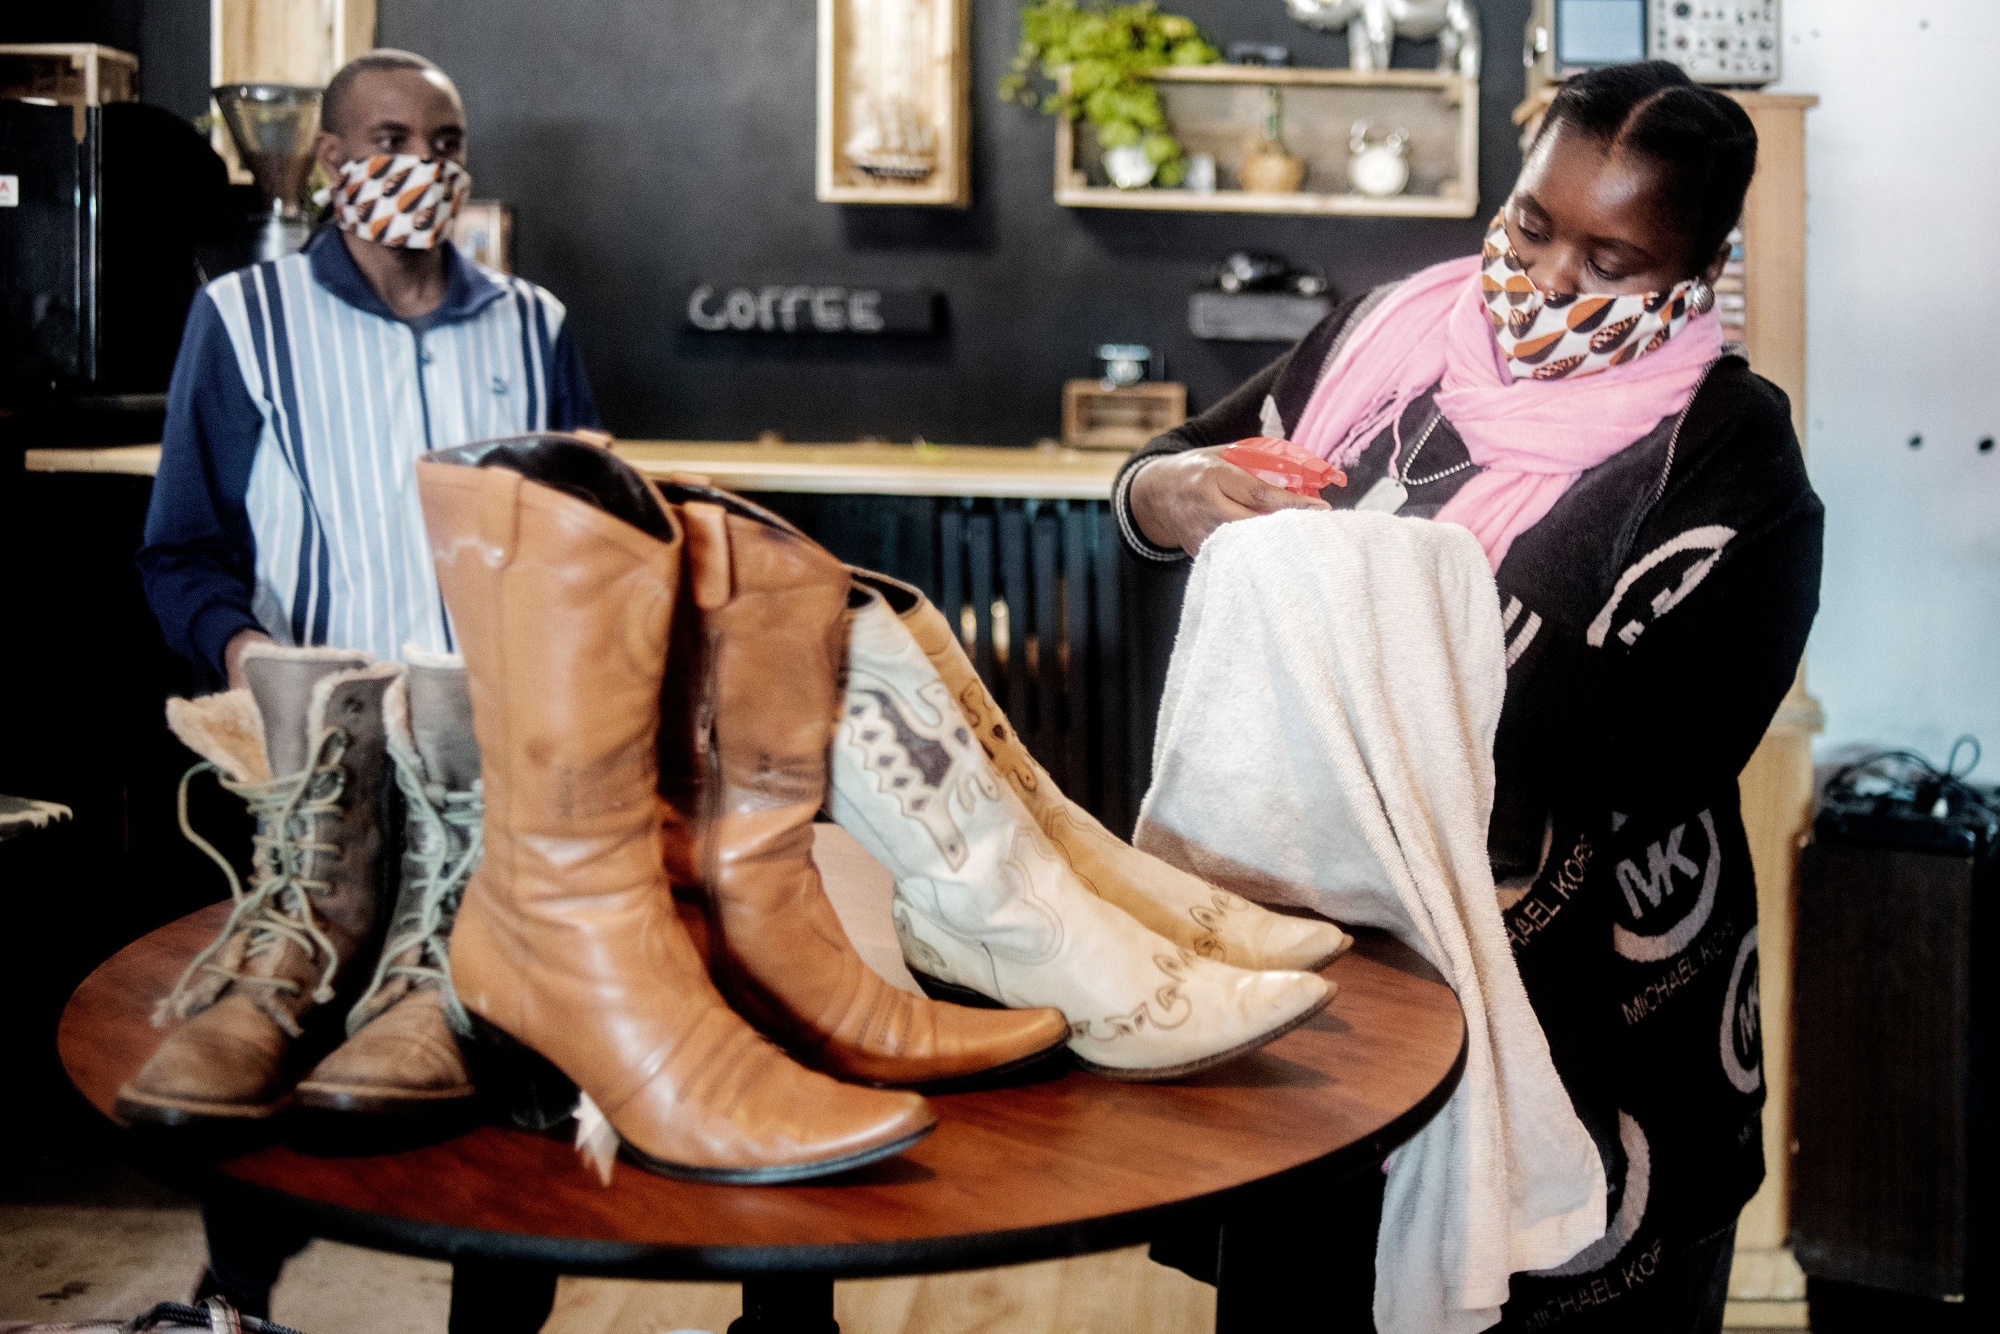 Bizarre Clothing Rules For Lockdown Baffle South Africans Bloomberg